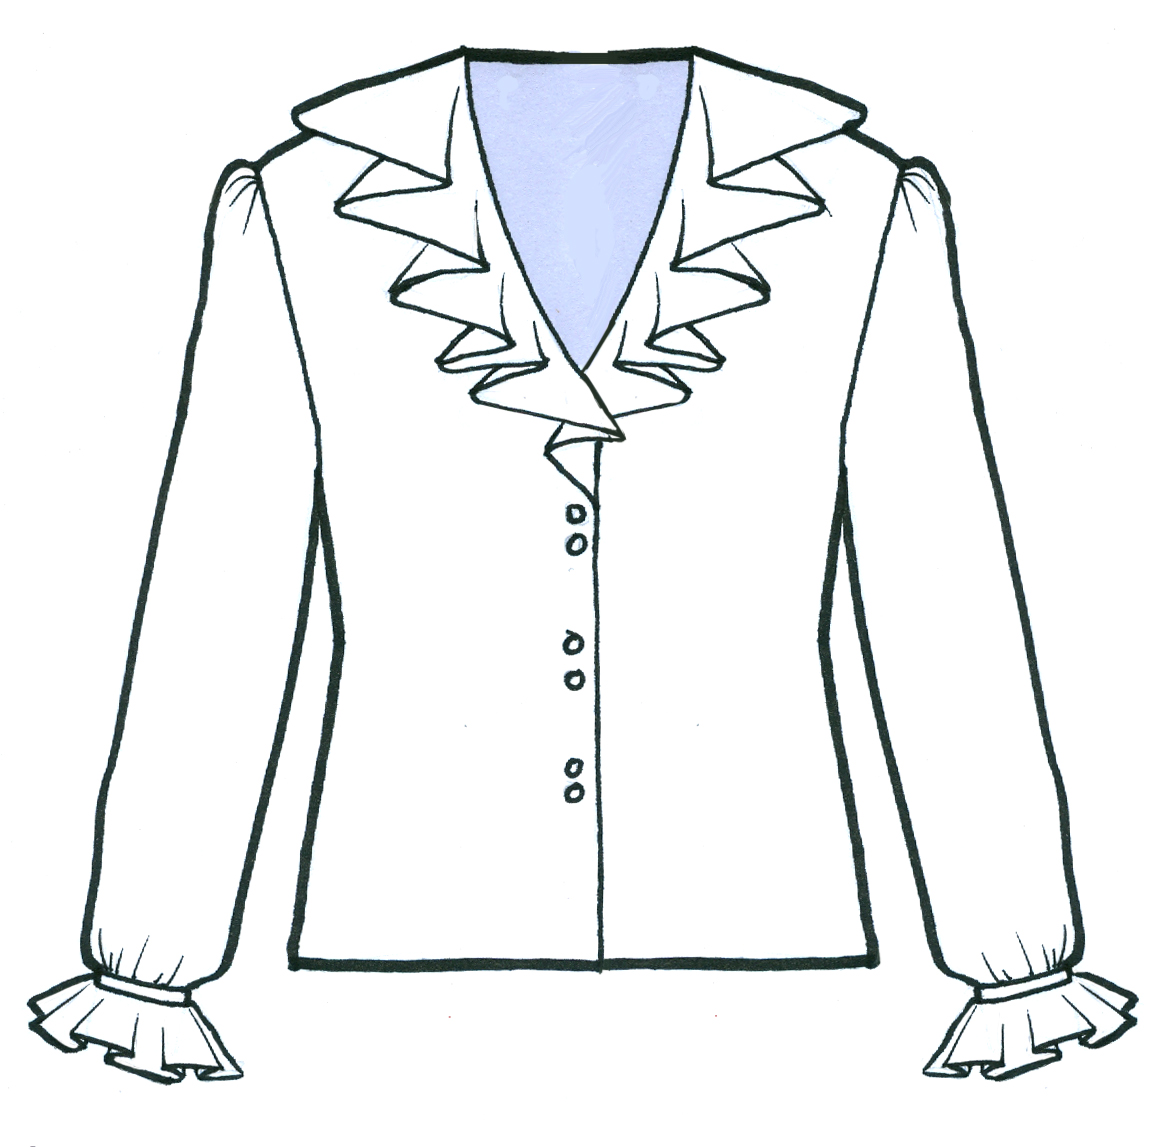 After Learning How To Draw The Gathered Skirts And Circular Skirts You Can  Use That Skill To Add Details To Shirts, Pants, Simple Skirts Or Where Ever  You